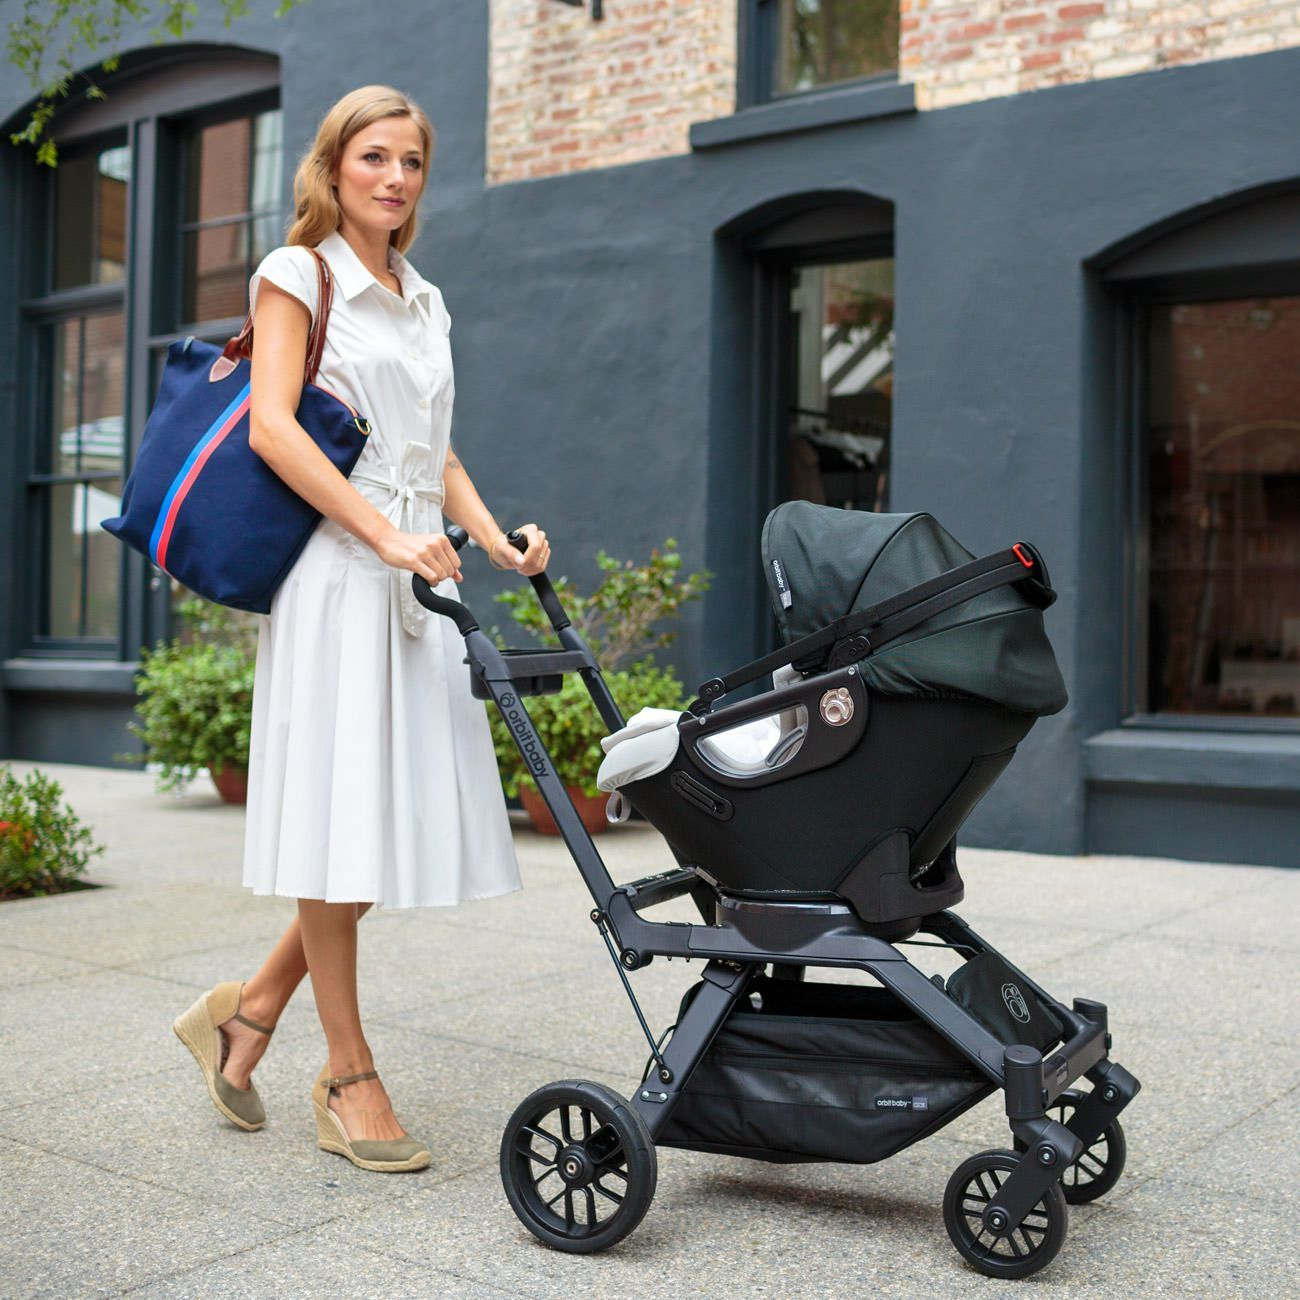 See why the Orbit g3 stroller and carseat are celebrity